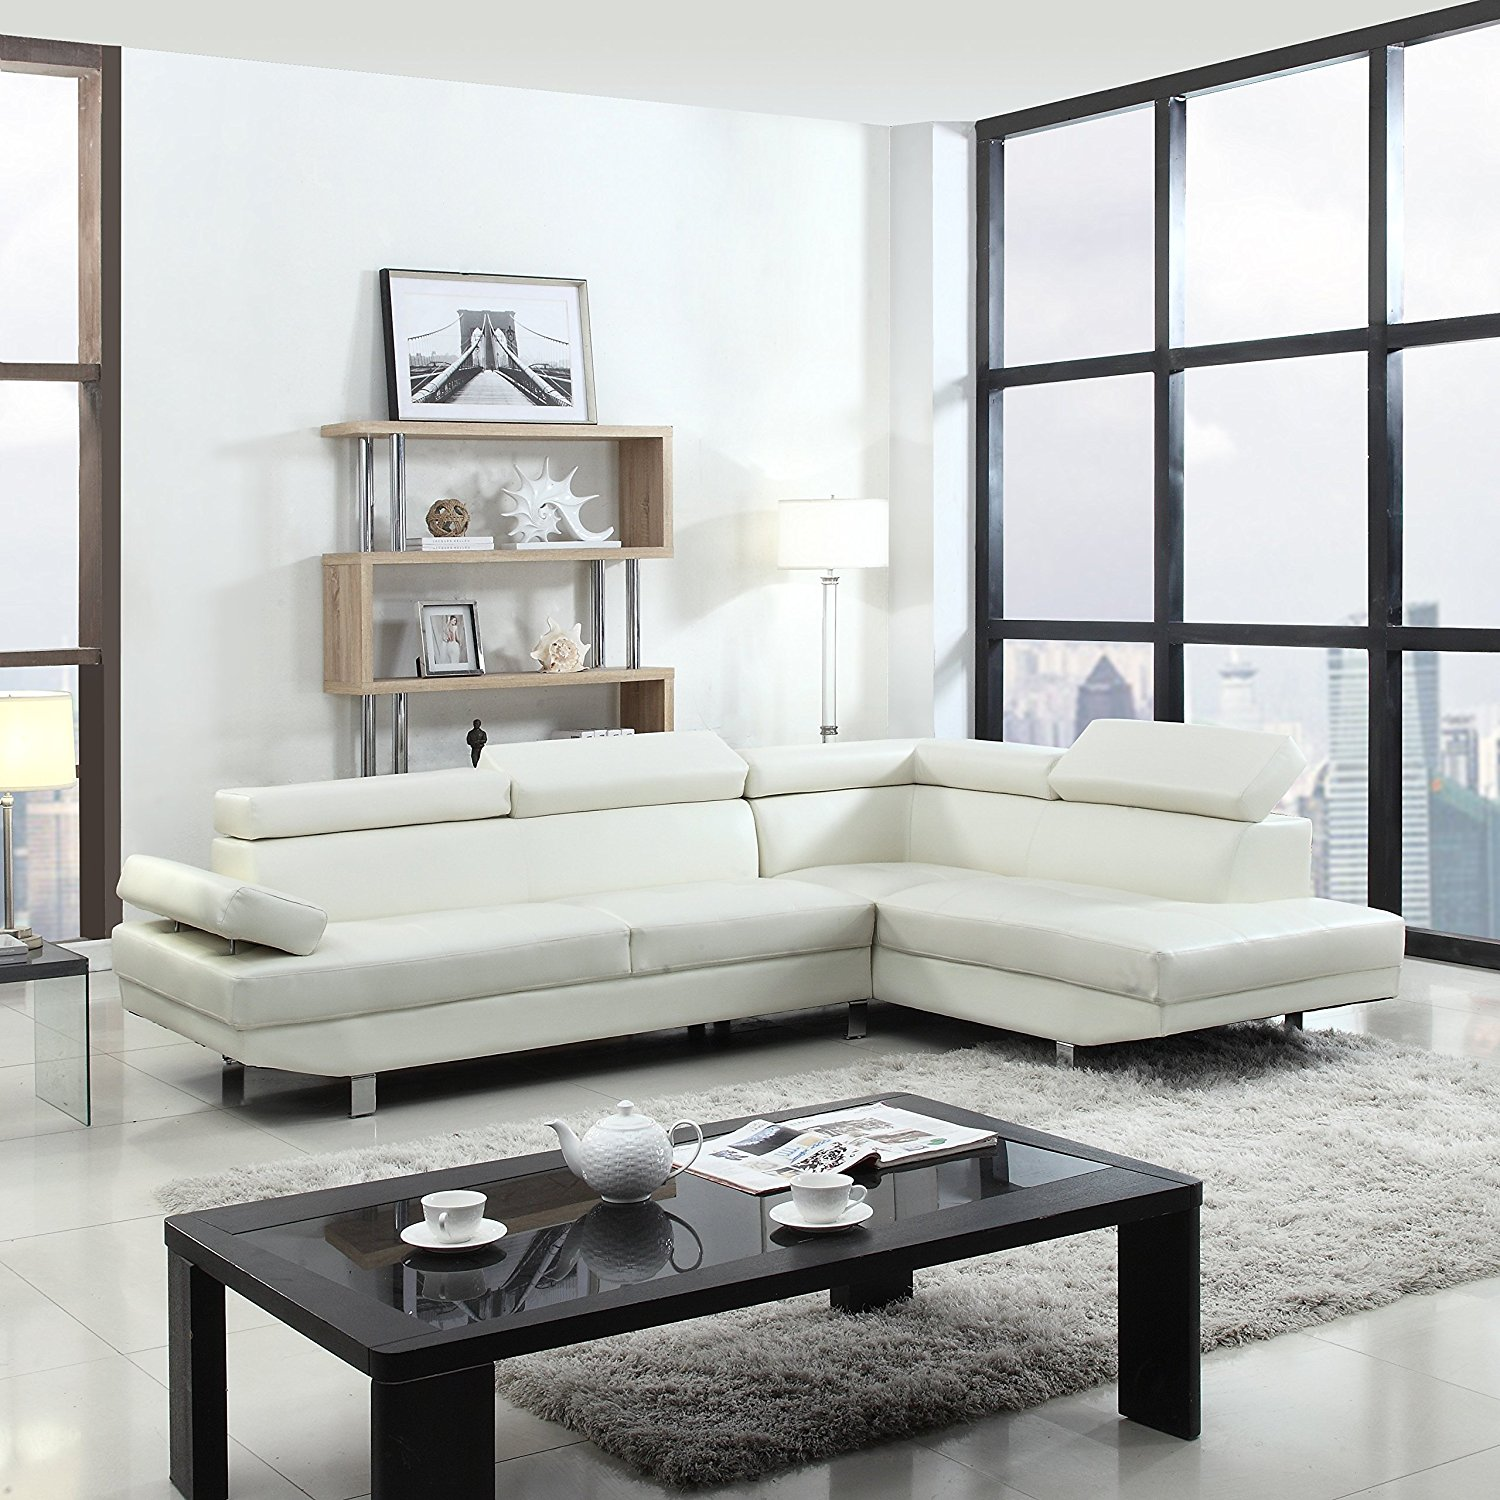 Poundex Is One Of The Best Sectional Sofa Brands In Market They Produce Elegantly